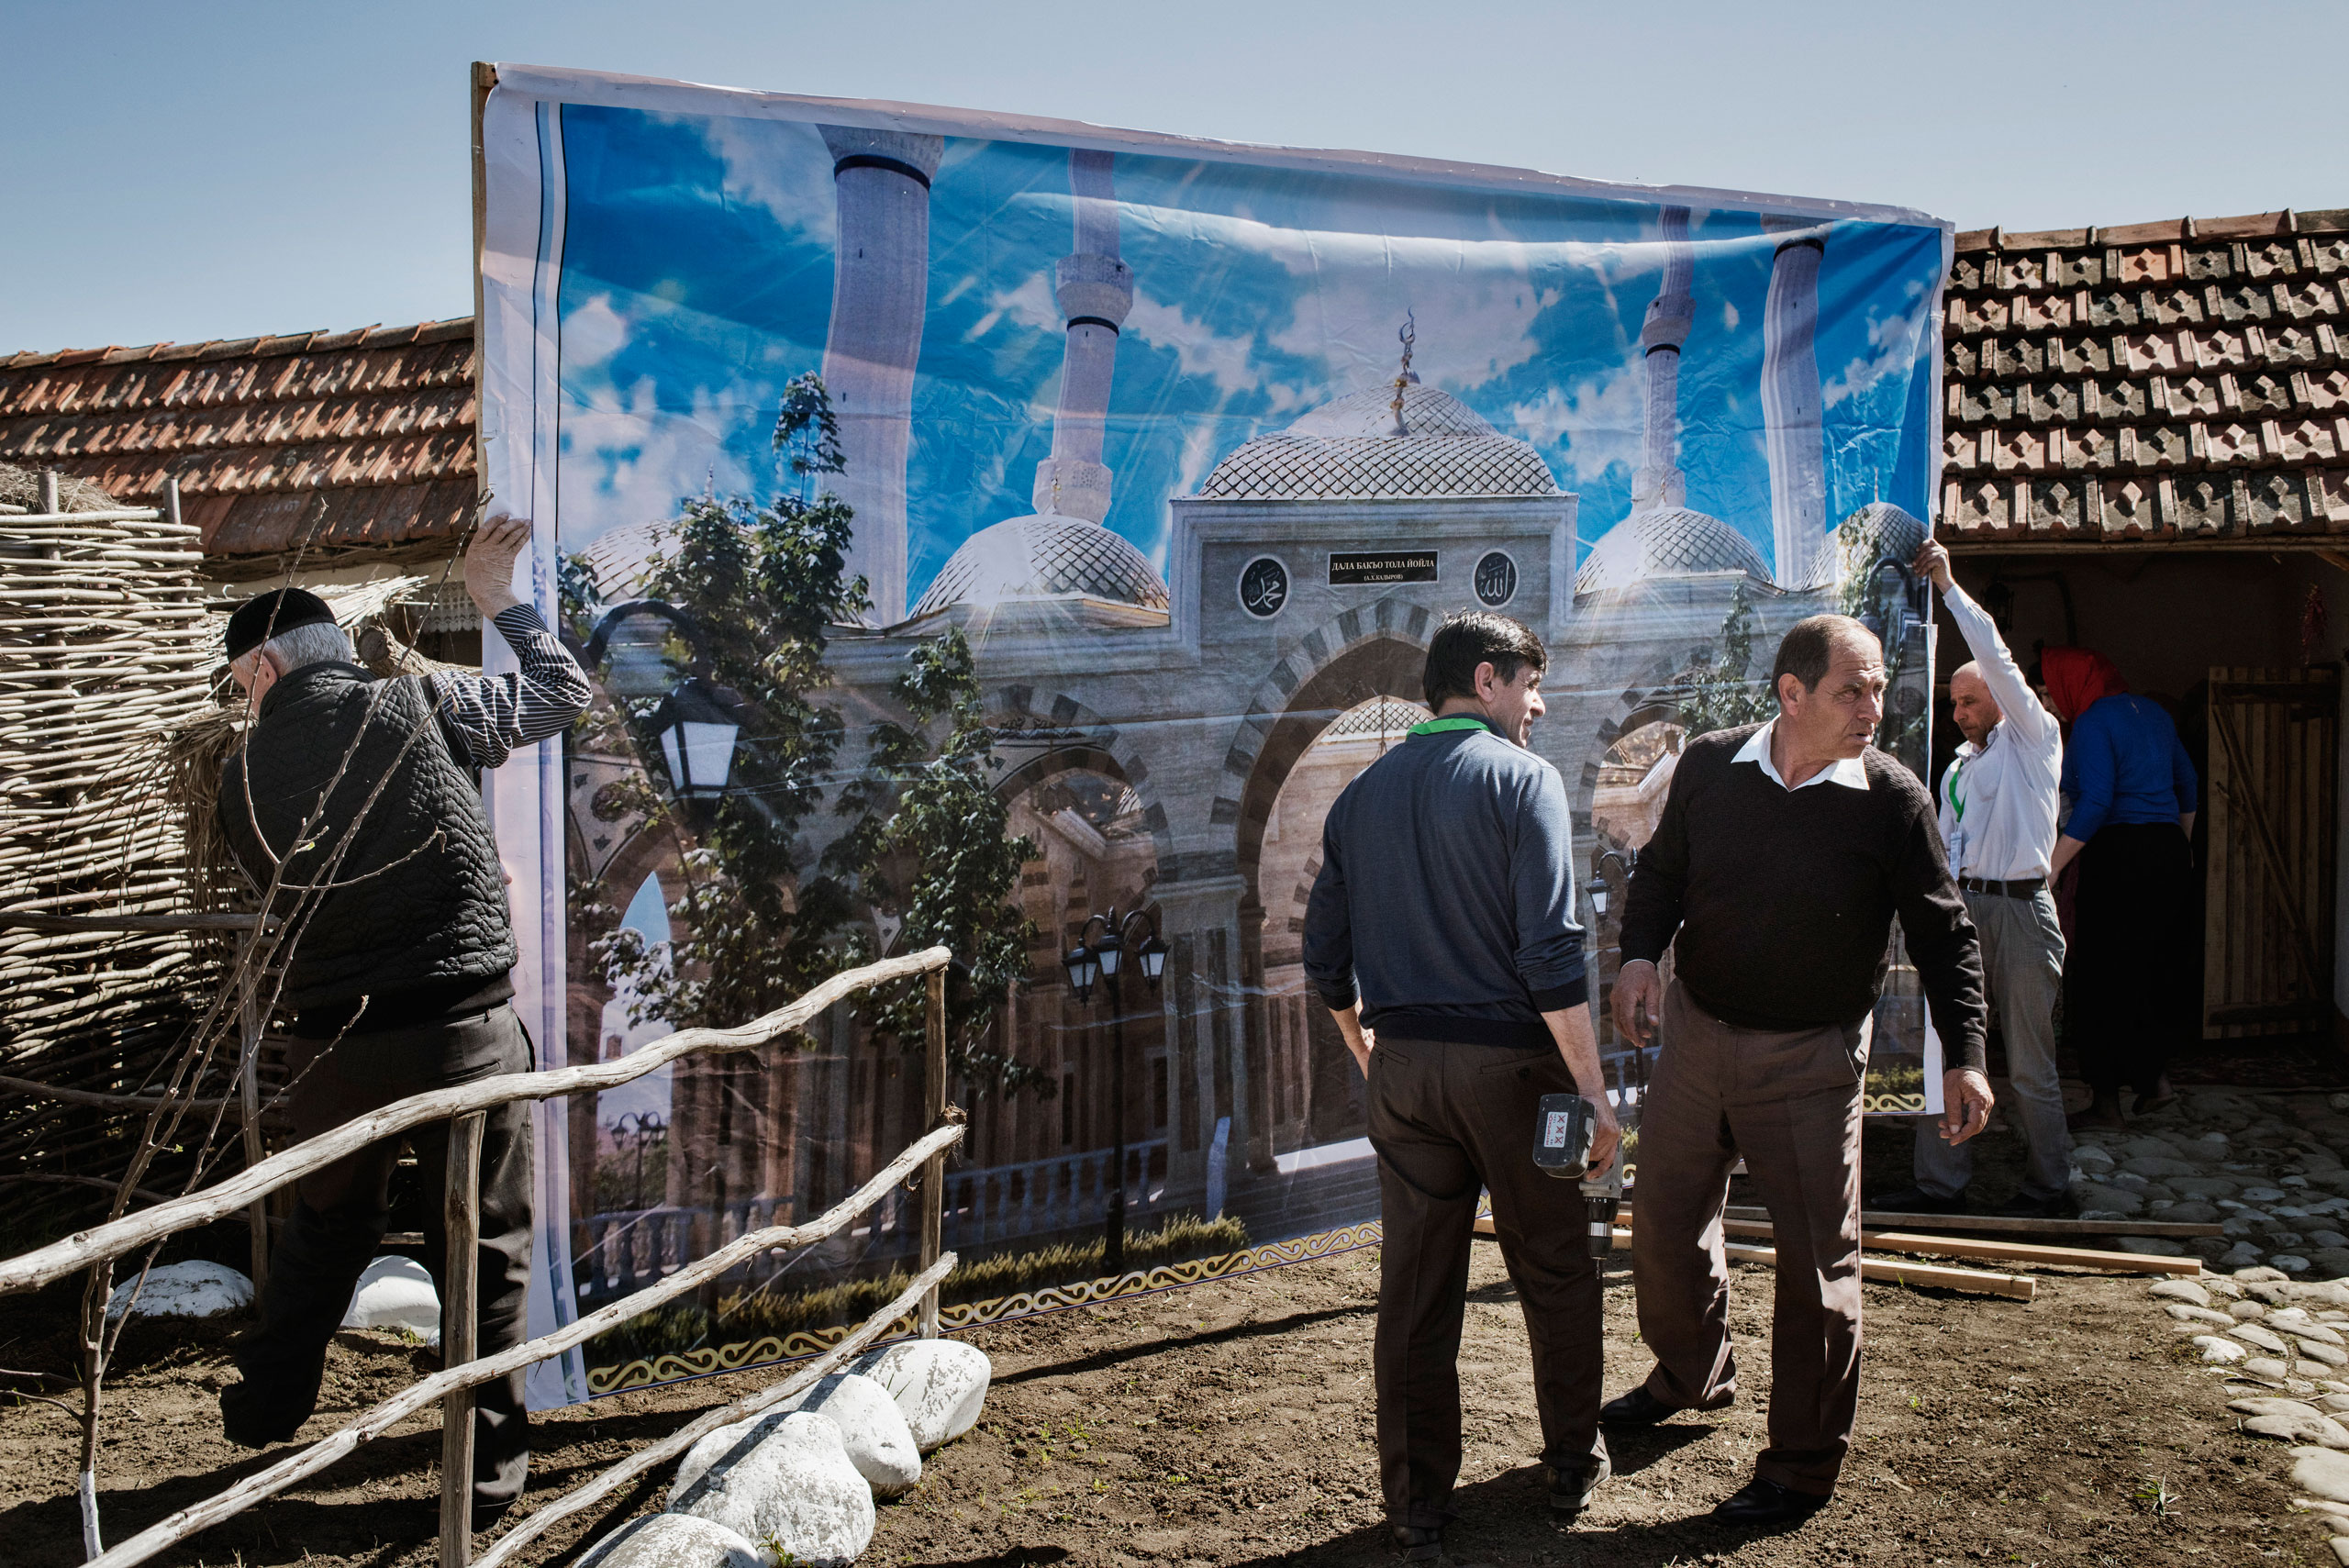 Workers set up their stand at a cultural festival near the town of Shali, Chechnya, April 2015.